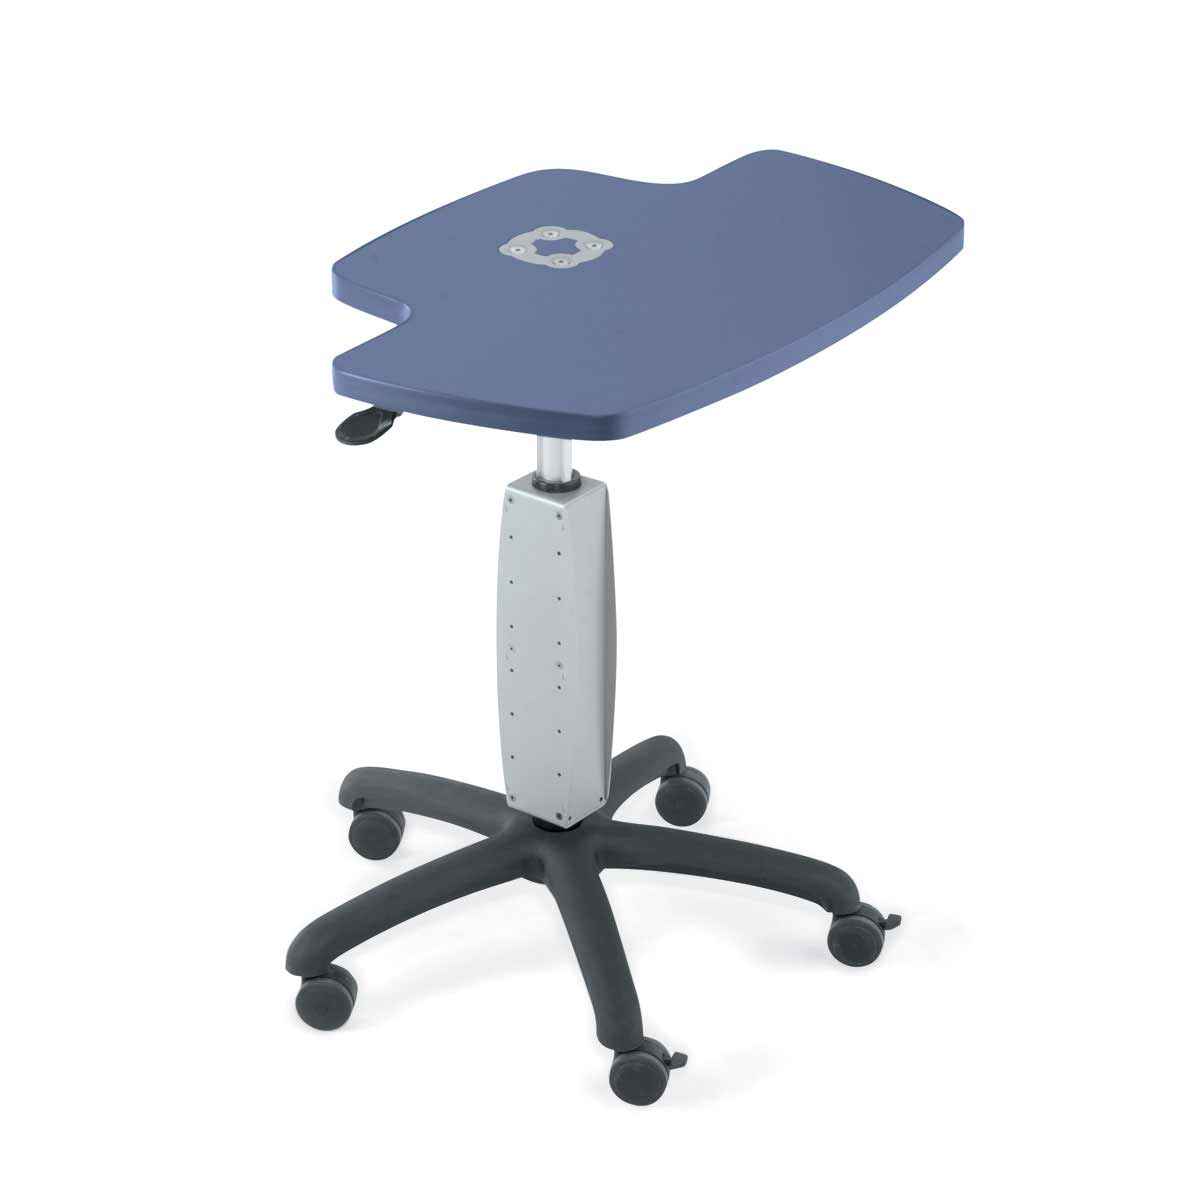 Anthro Height Adjustable Mobile Laptop Cart